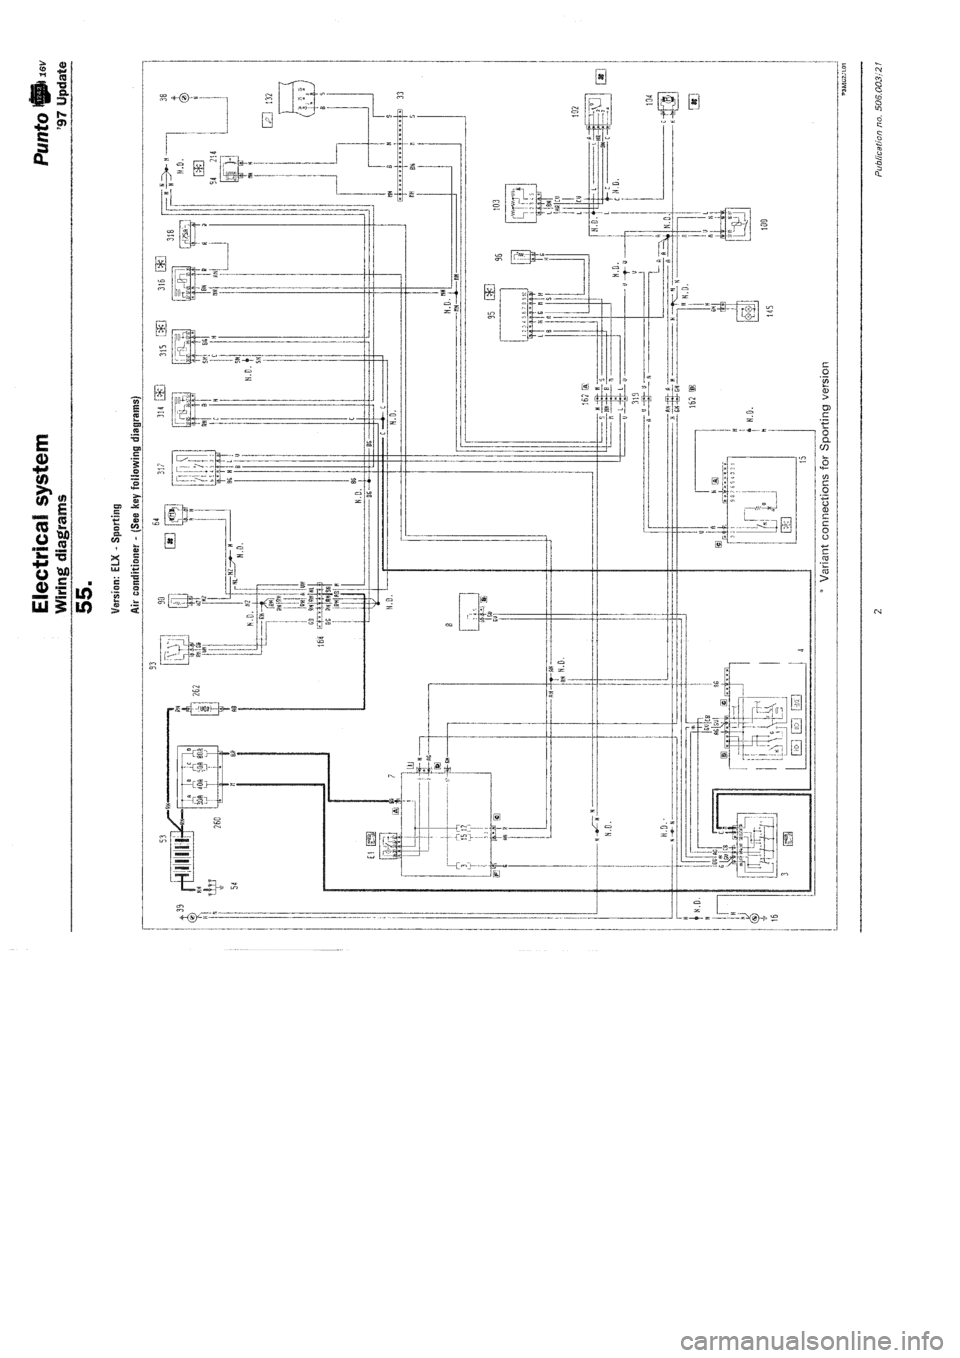 w960_4692 2 fiat punto 1997 176 1 g wiring diagrams workshop manual fiat grande punto wiring diagram pdf at crackthecode.co